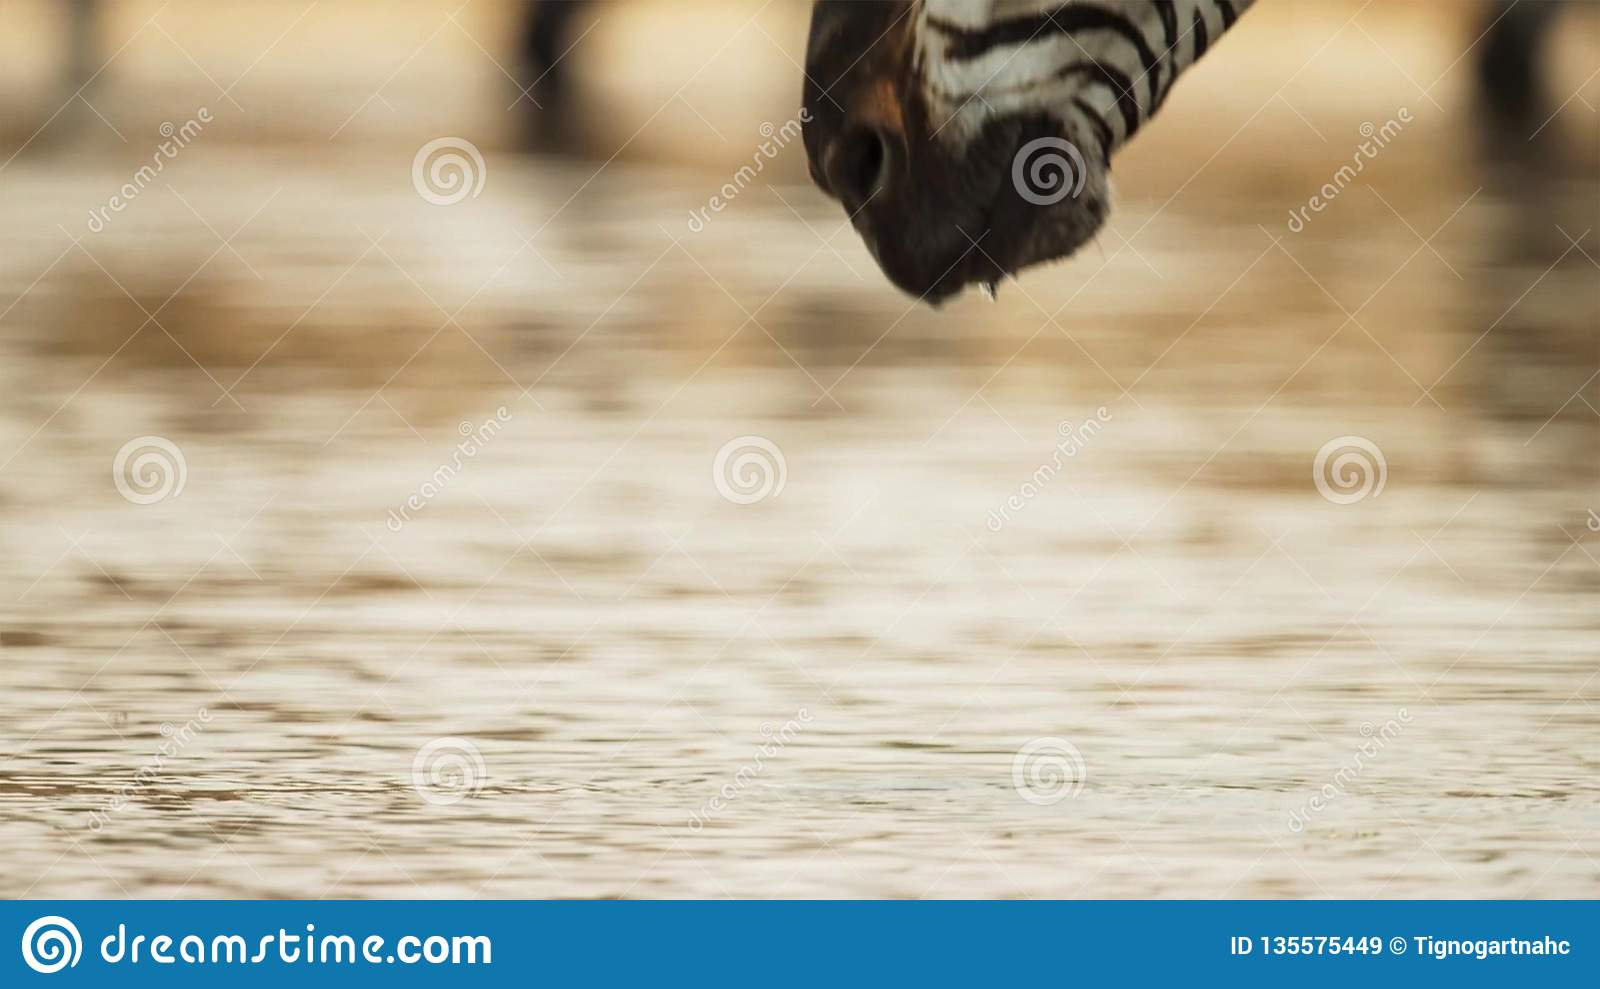 Close Up of Zebras Head Drinking Water at Watering Hole